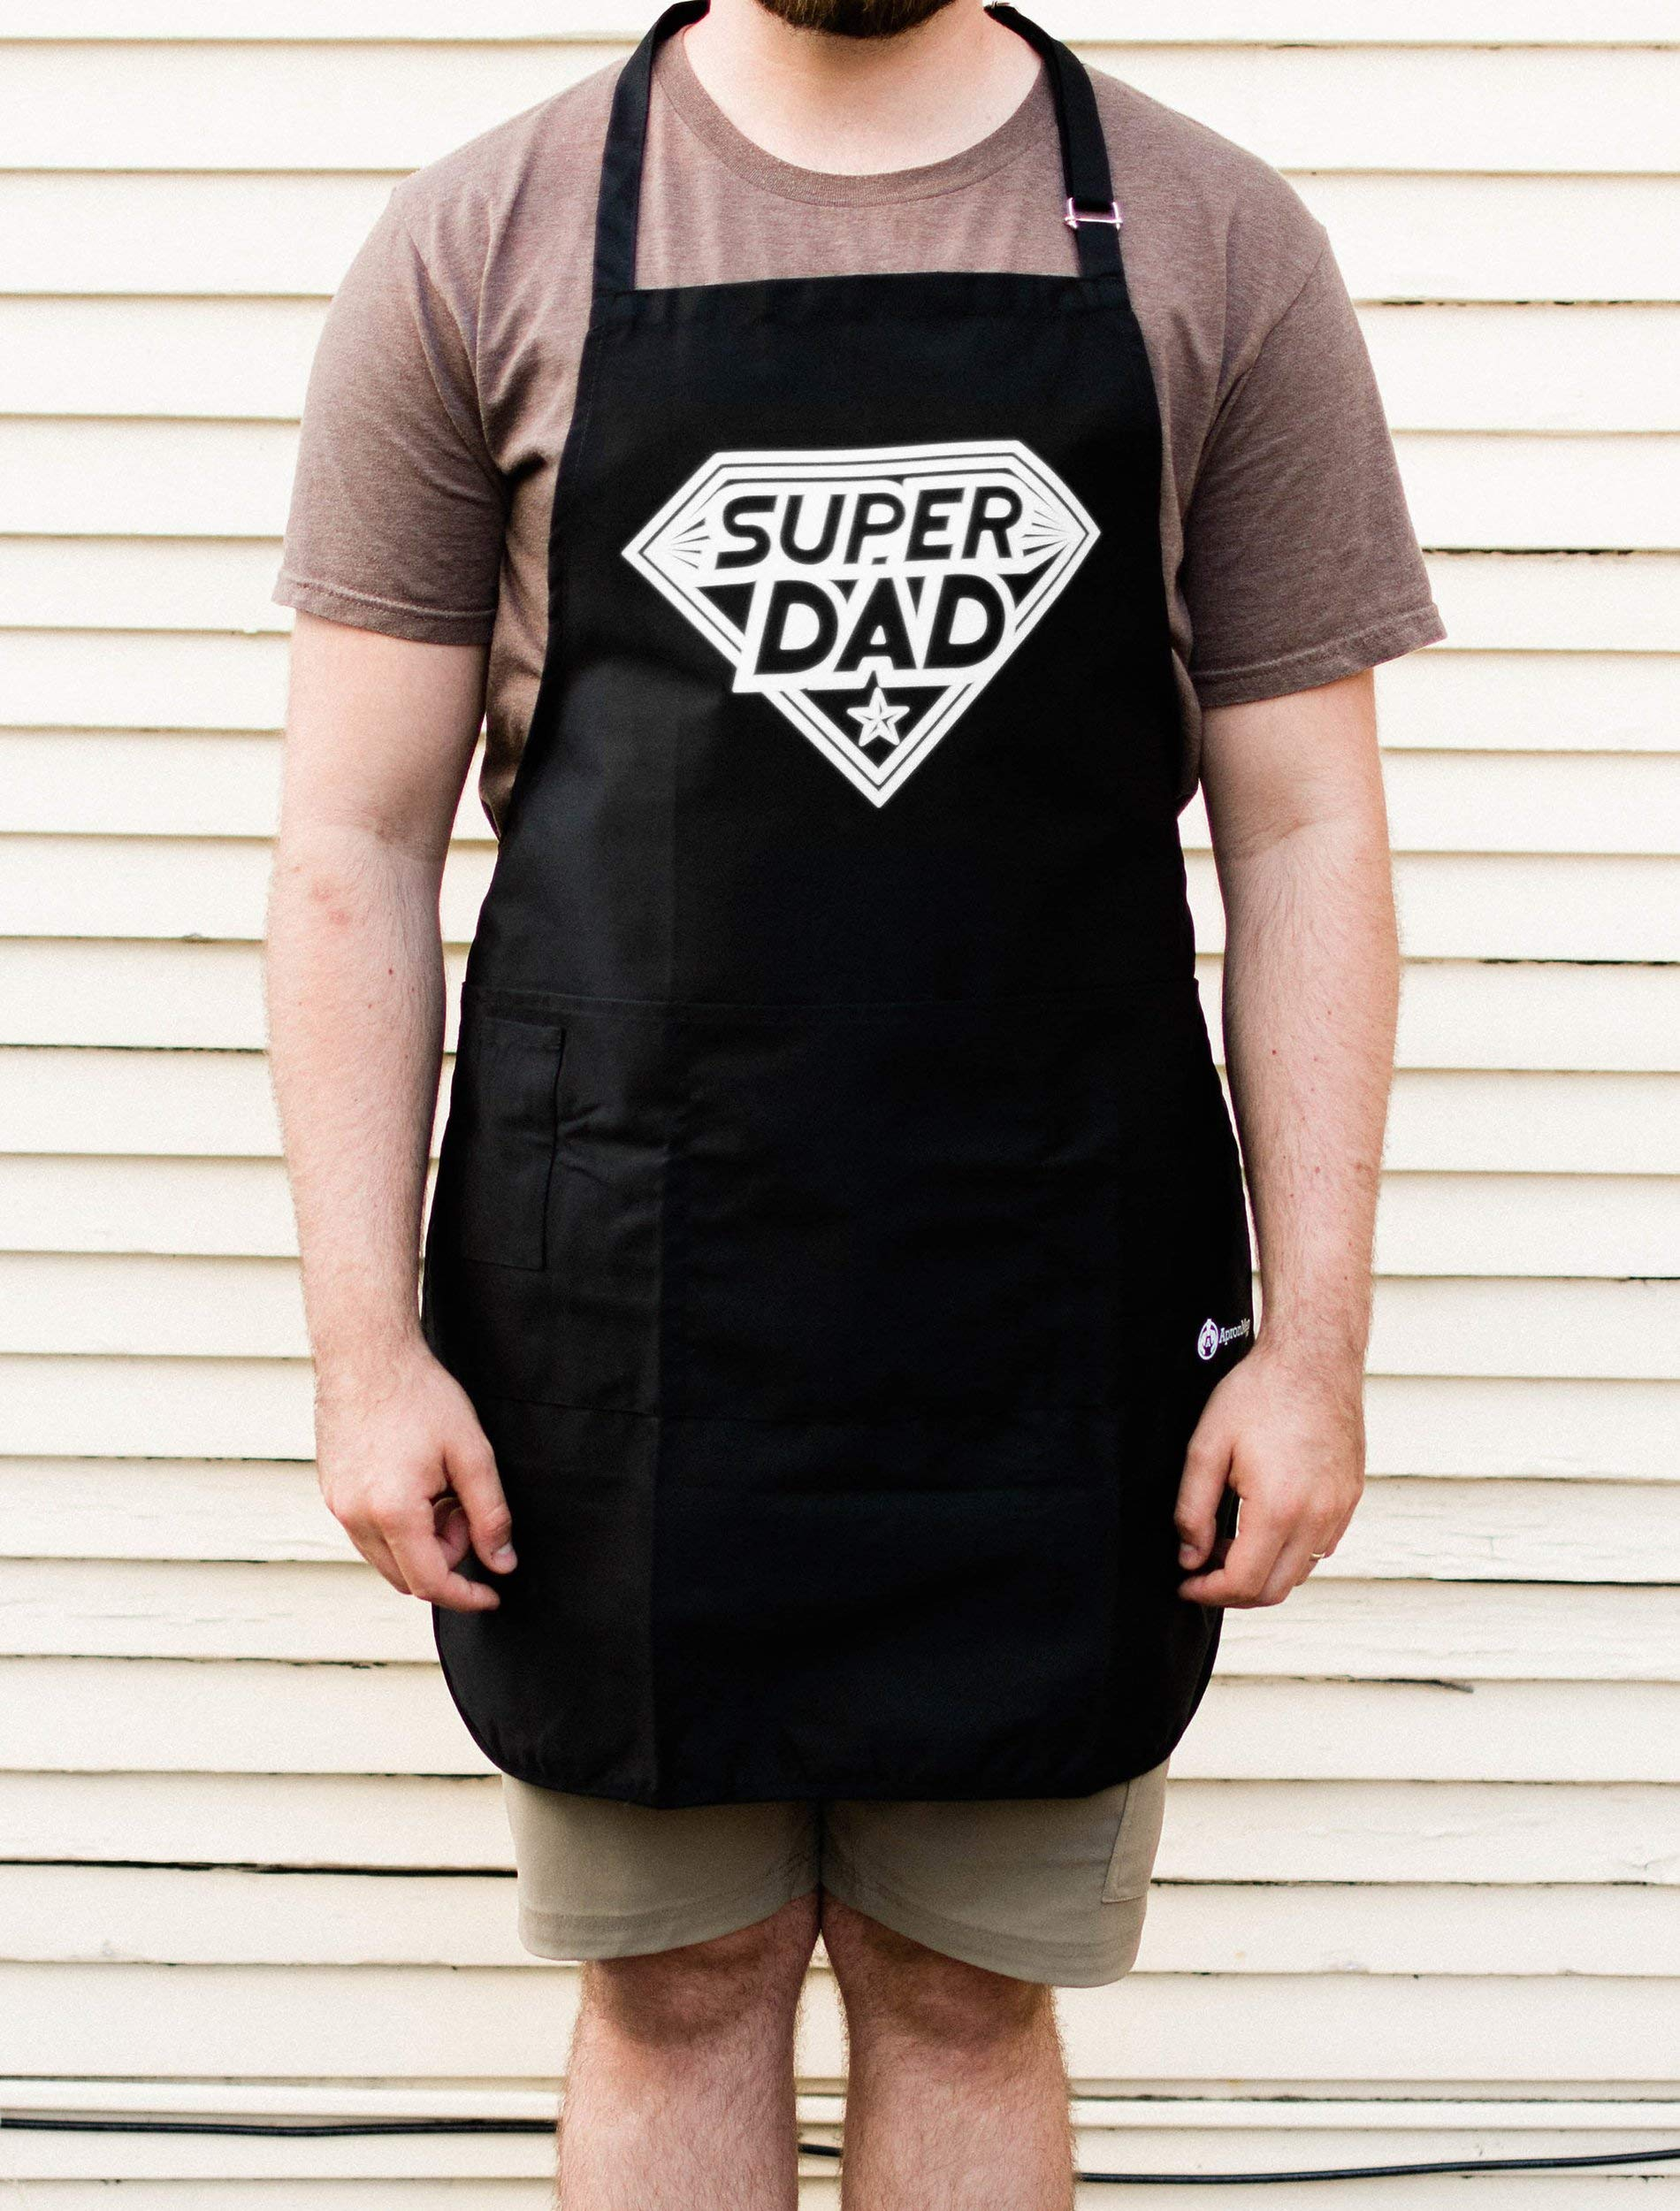 BBQ Grill Apron - Super Dad - Funny Apron For Dad - 1 Size Fits All Chef Apron High Quality Poly/Cotton 4 Utility Pockets, Adjustable Neck and Extra Long Waist Ties by ApronMen (Image #2)